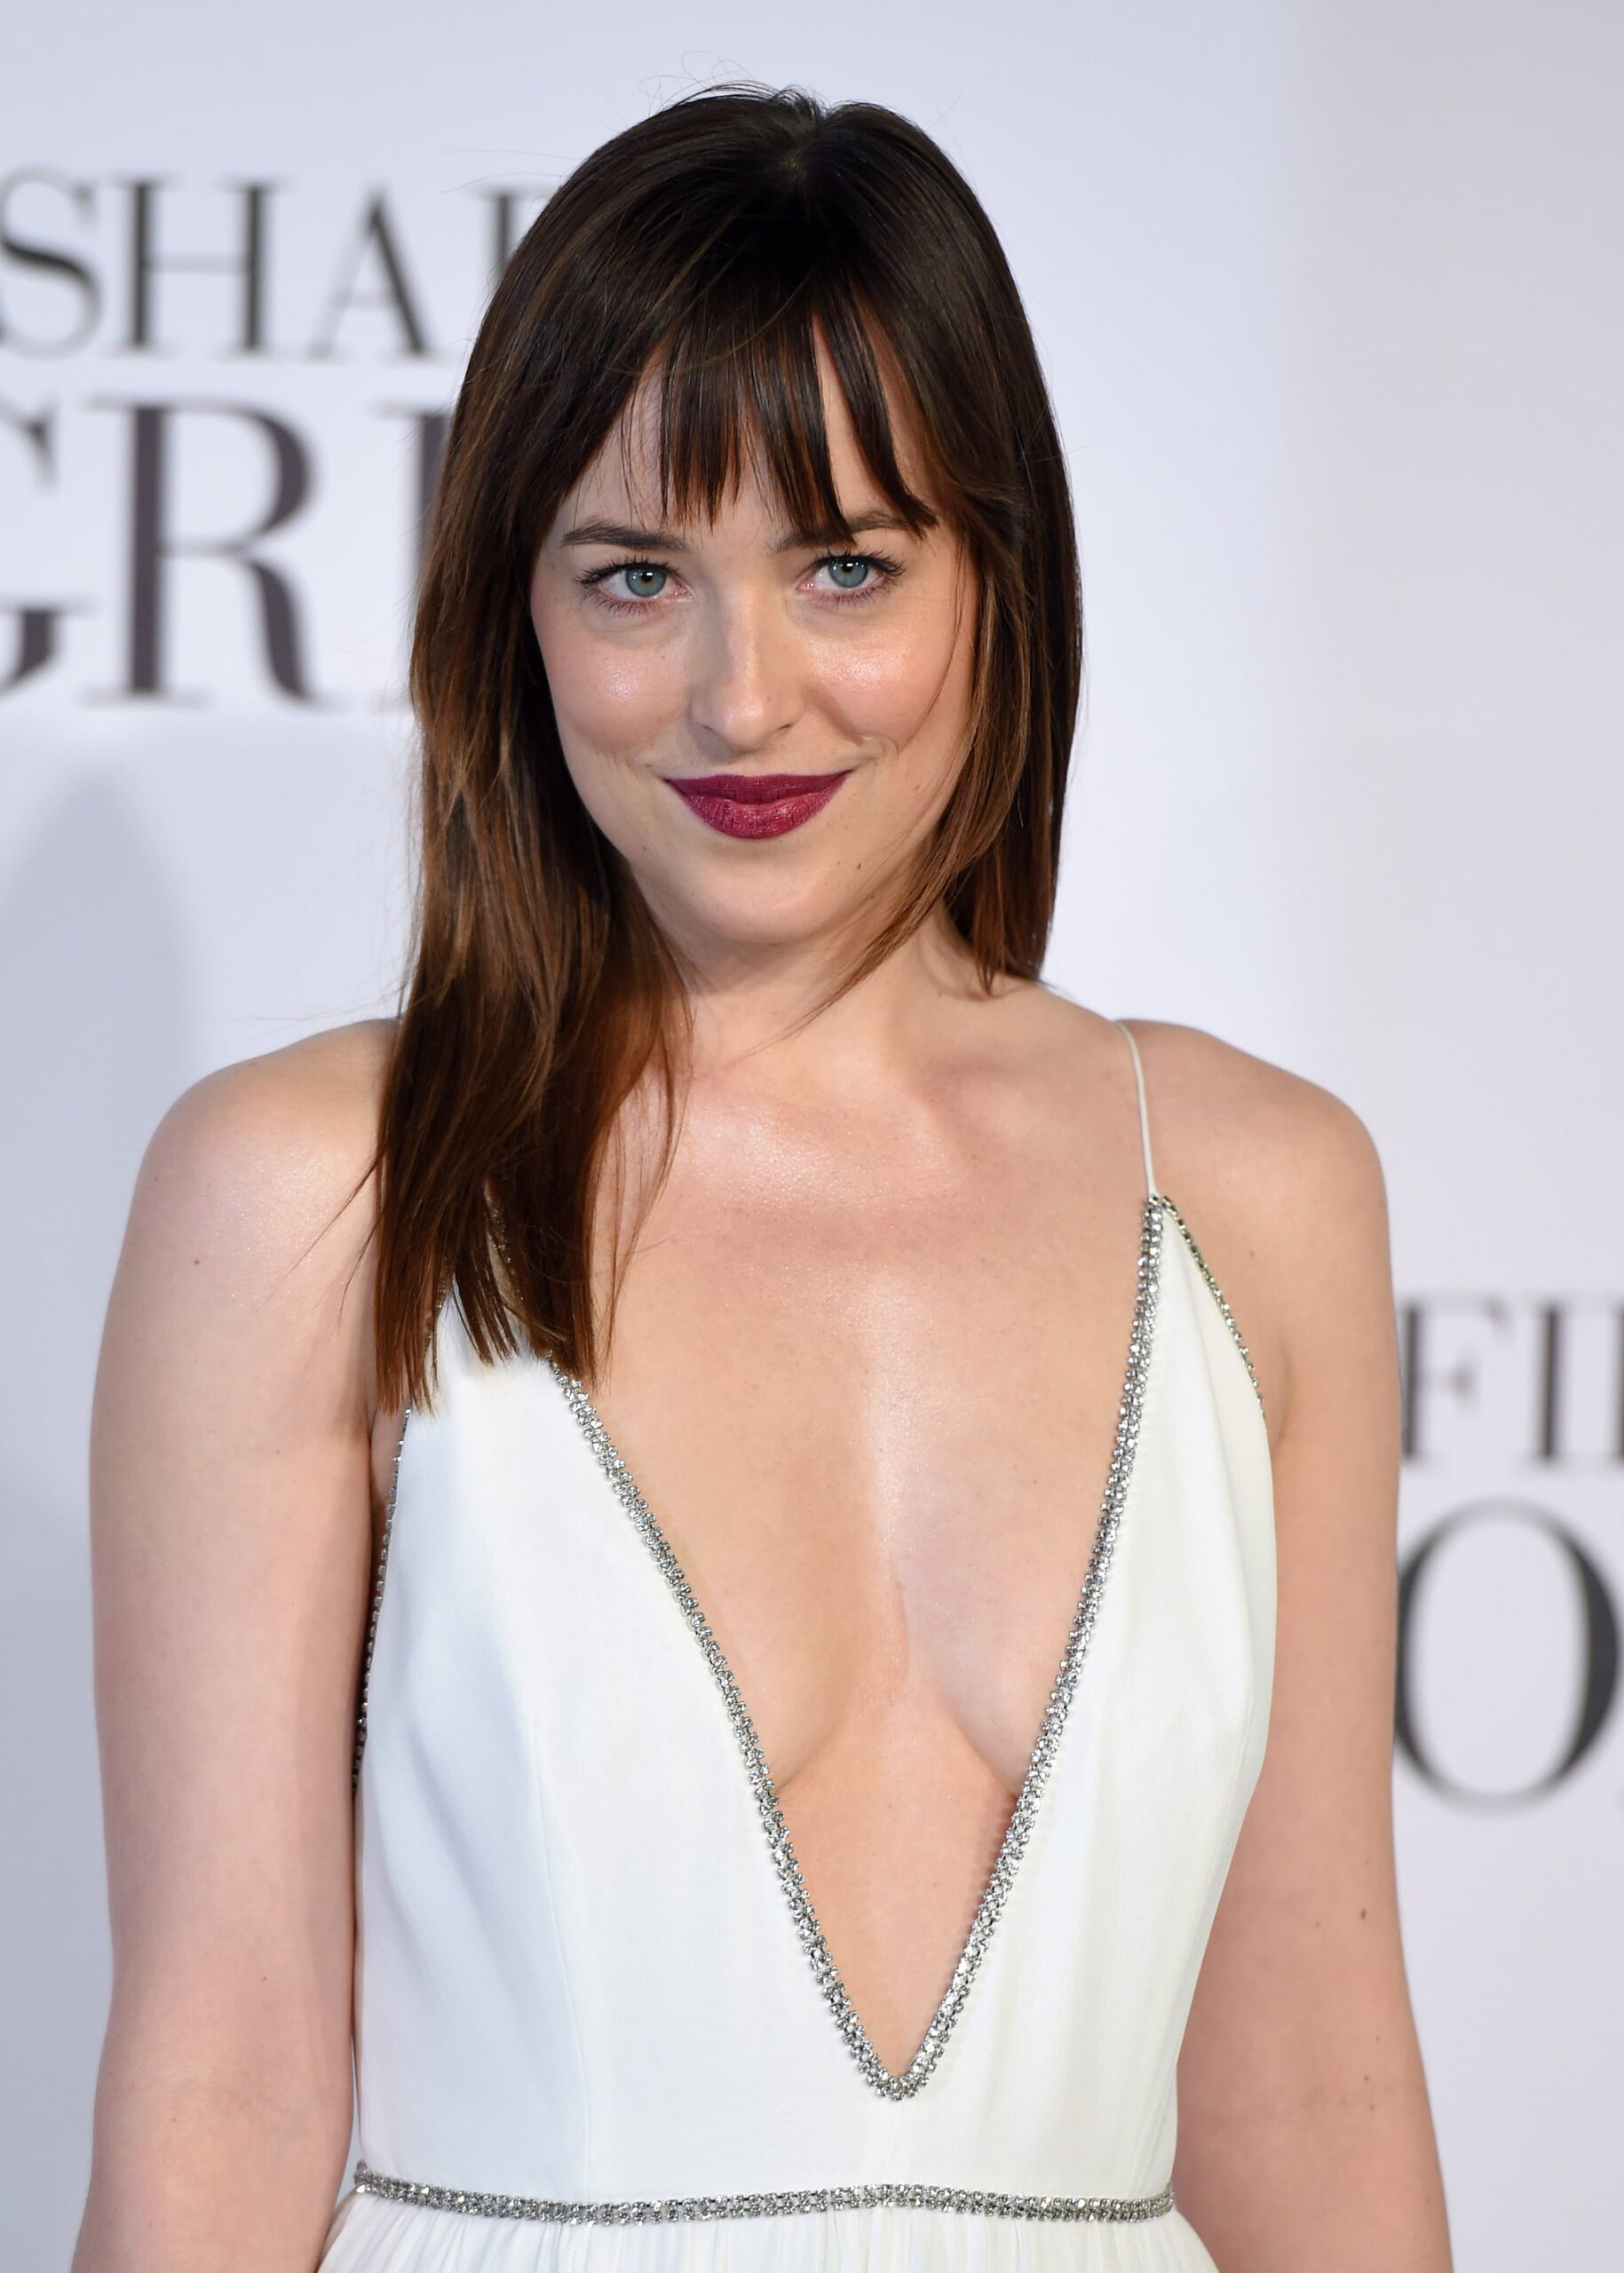 Dakota Johnson Phone number, Email Id, Fanmail, Instagram, Tiktok, and Contact Details